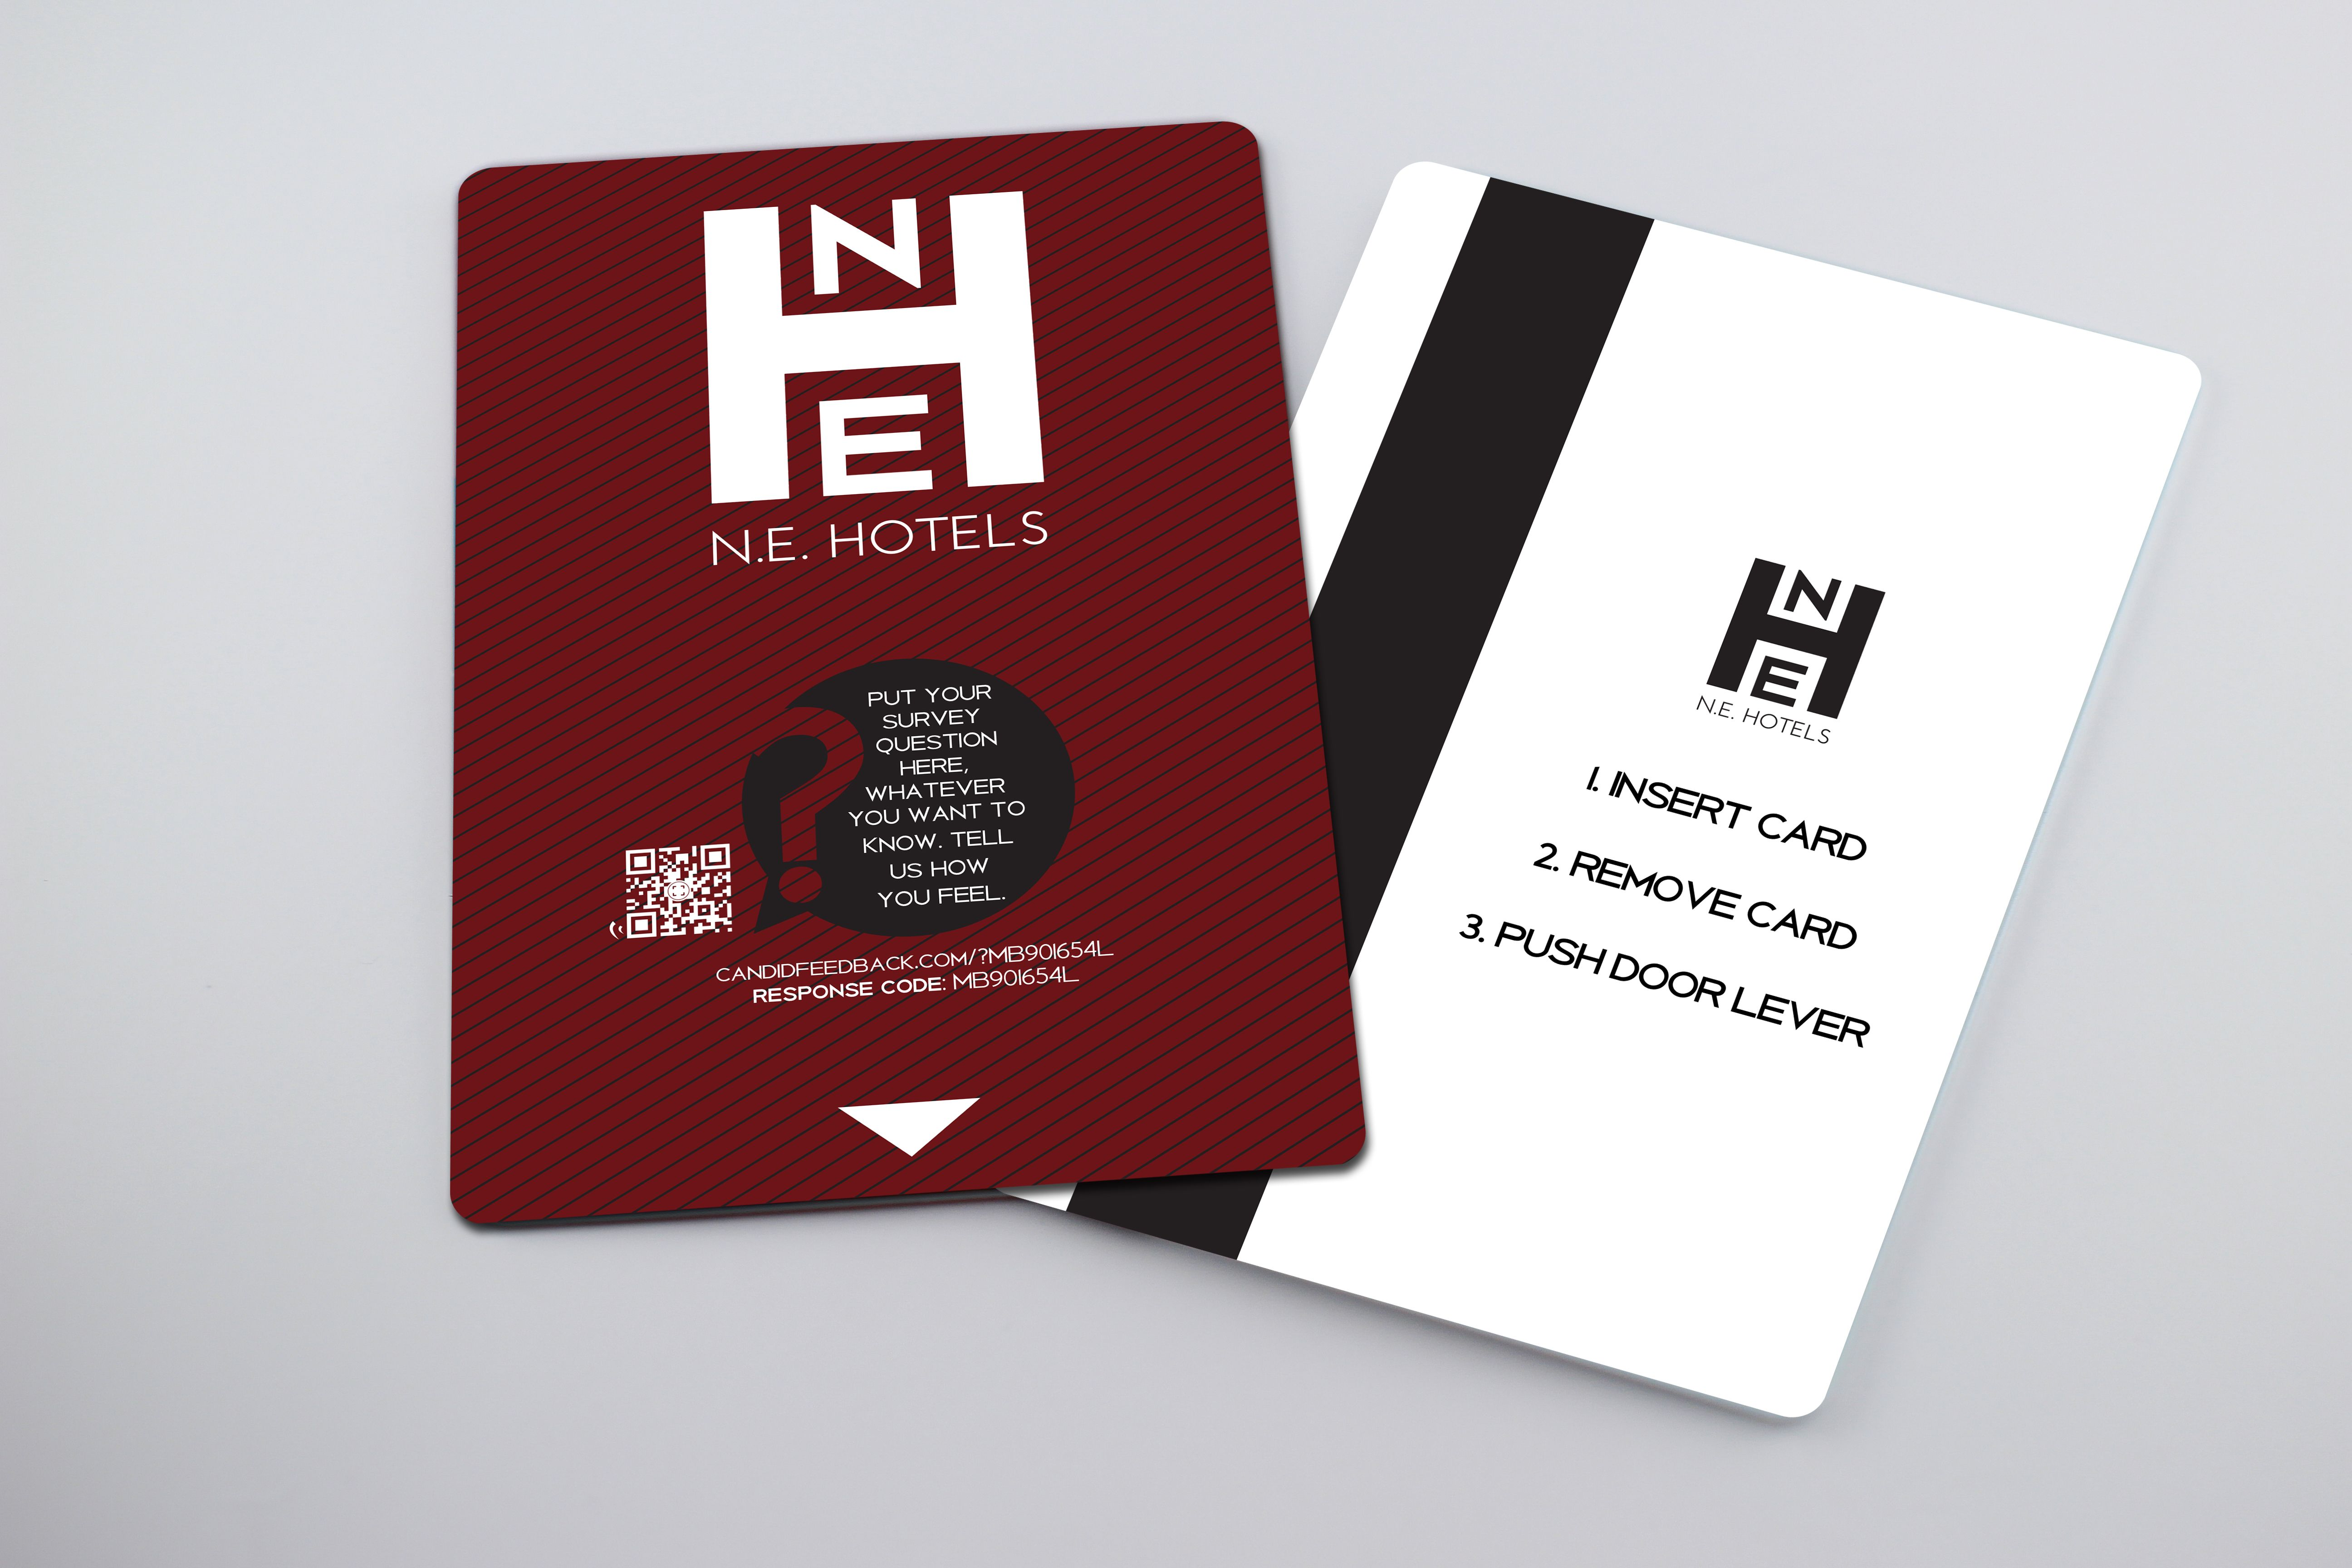 Photorealistic Mobile Feedback Hotel Key Card Design Mockup Candidcup Http Candidcup Com Hotel Key Cards Card Design Cards